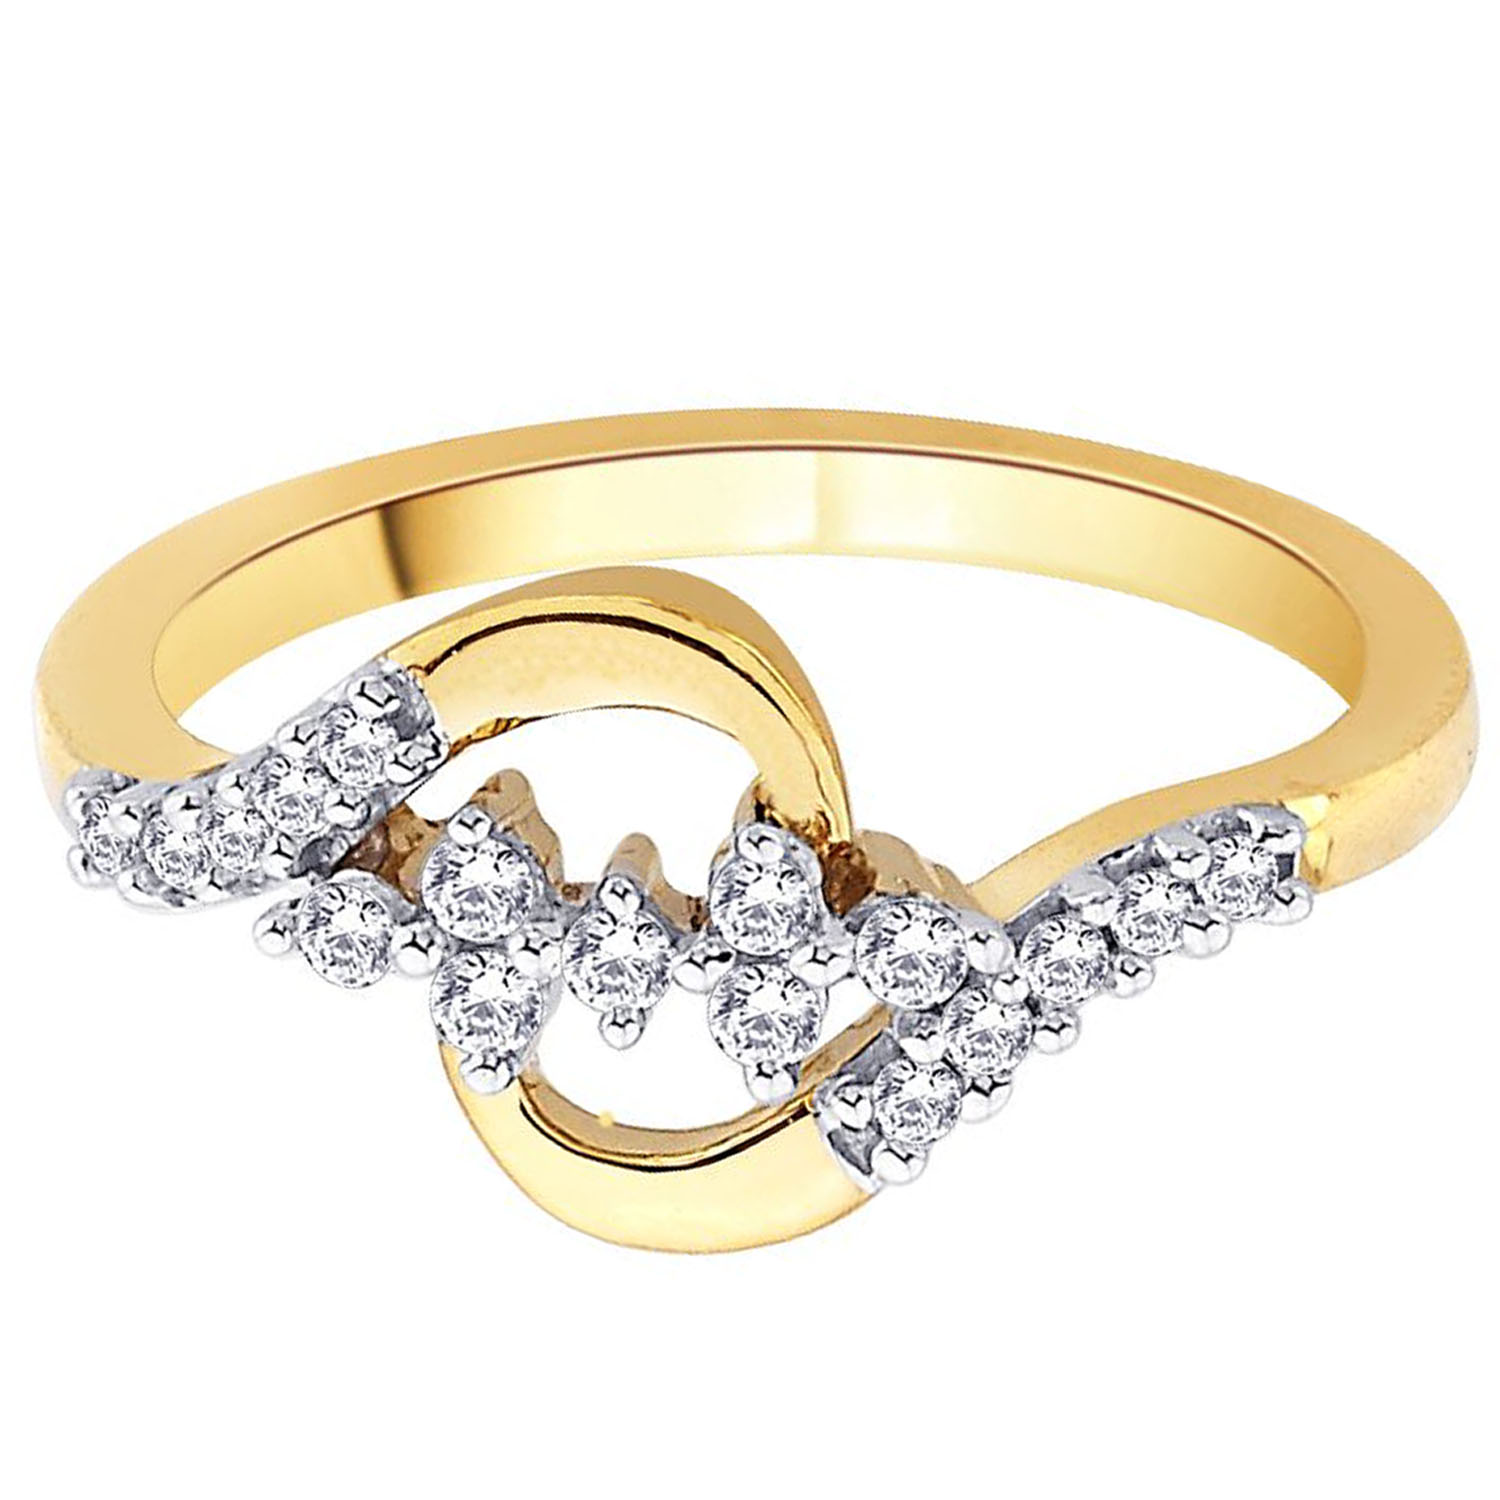 Asmi Diamond Rings Asmi 18kt Gold Amp Diamond Ring